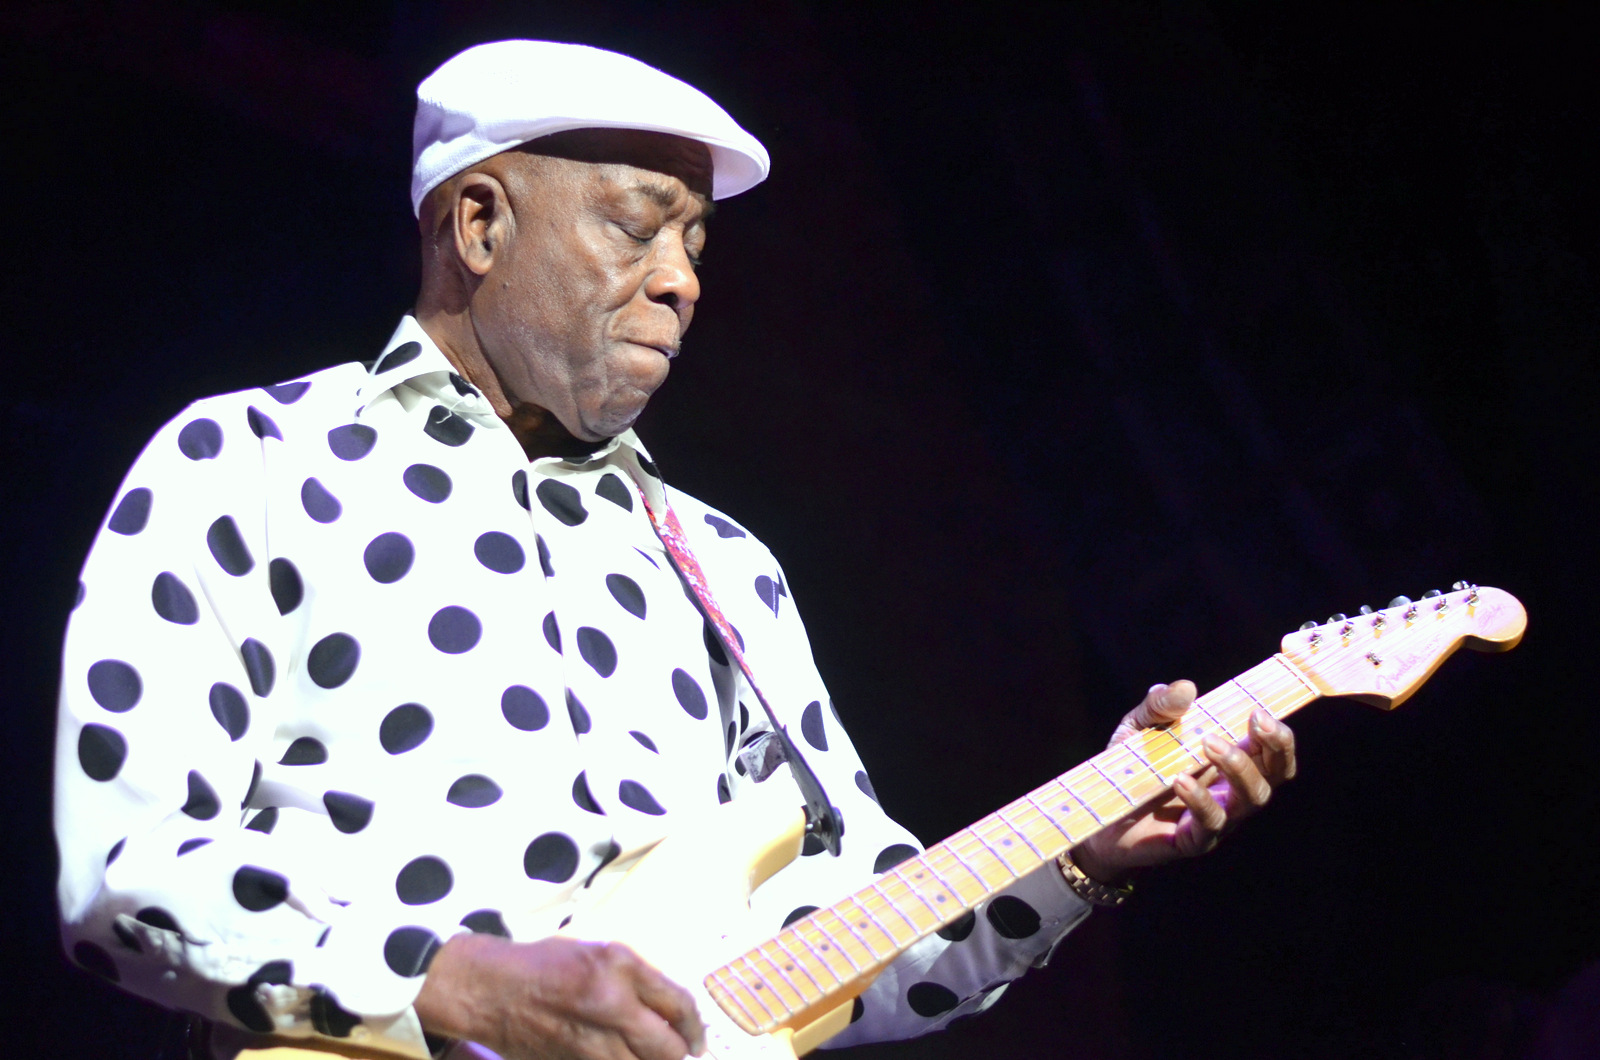 Buddy Guy at the Paramount in Huntington on 6-11-2014.